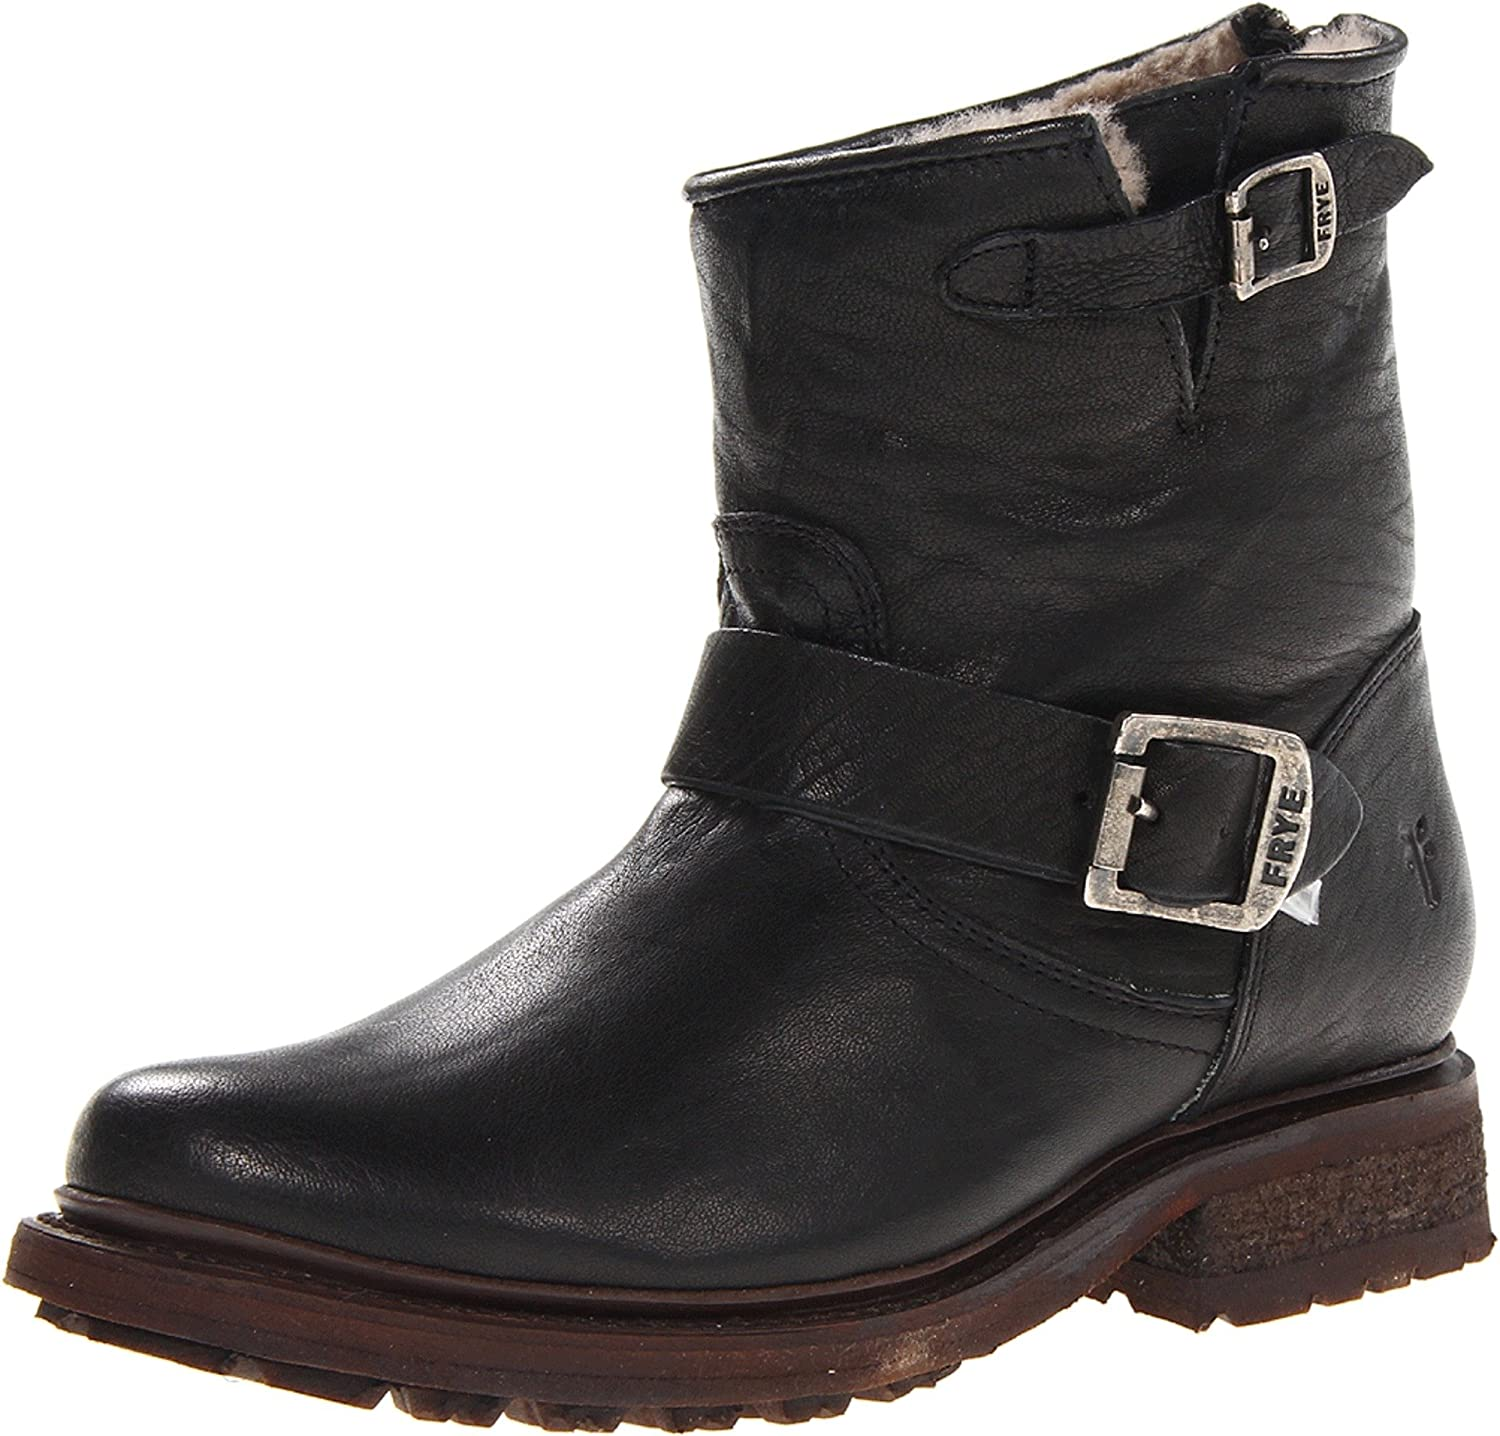 FRYE Women's Valerie Shearling 6 Boot B00BGBRD66 7.5 B(M) US|Black-75016